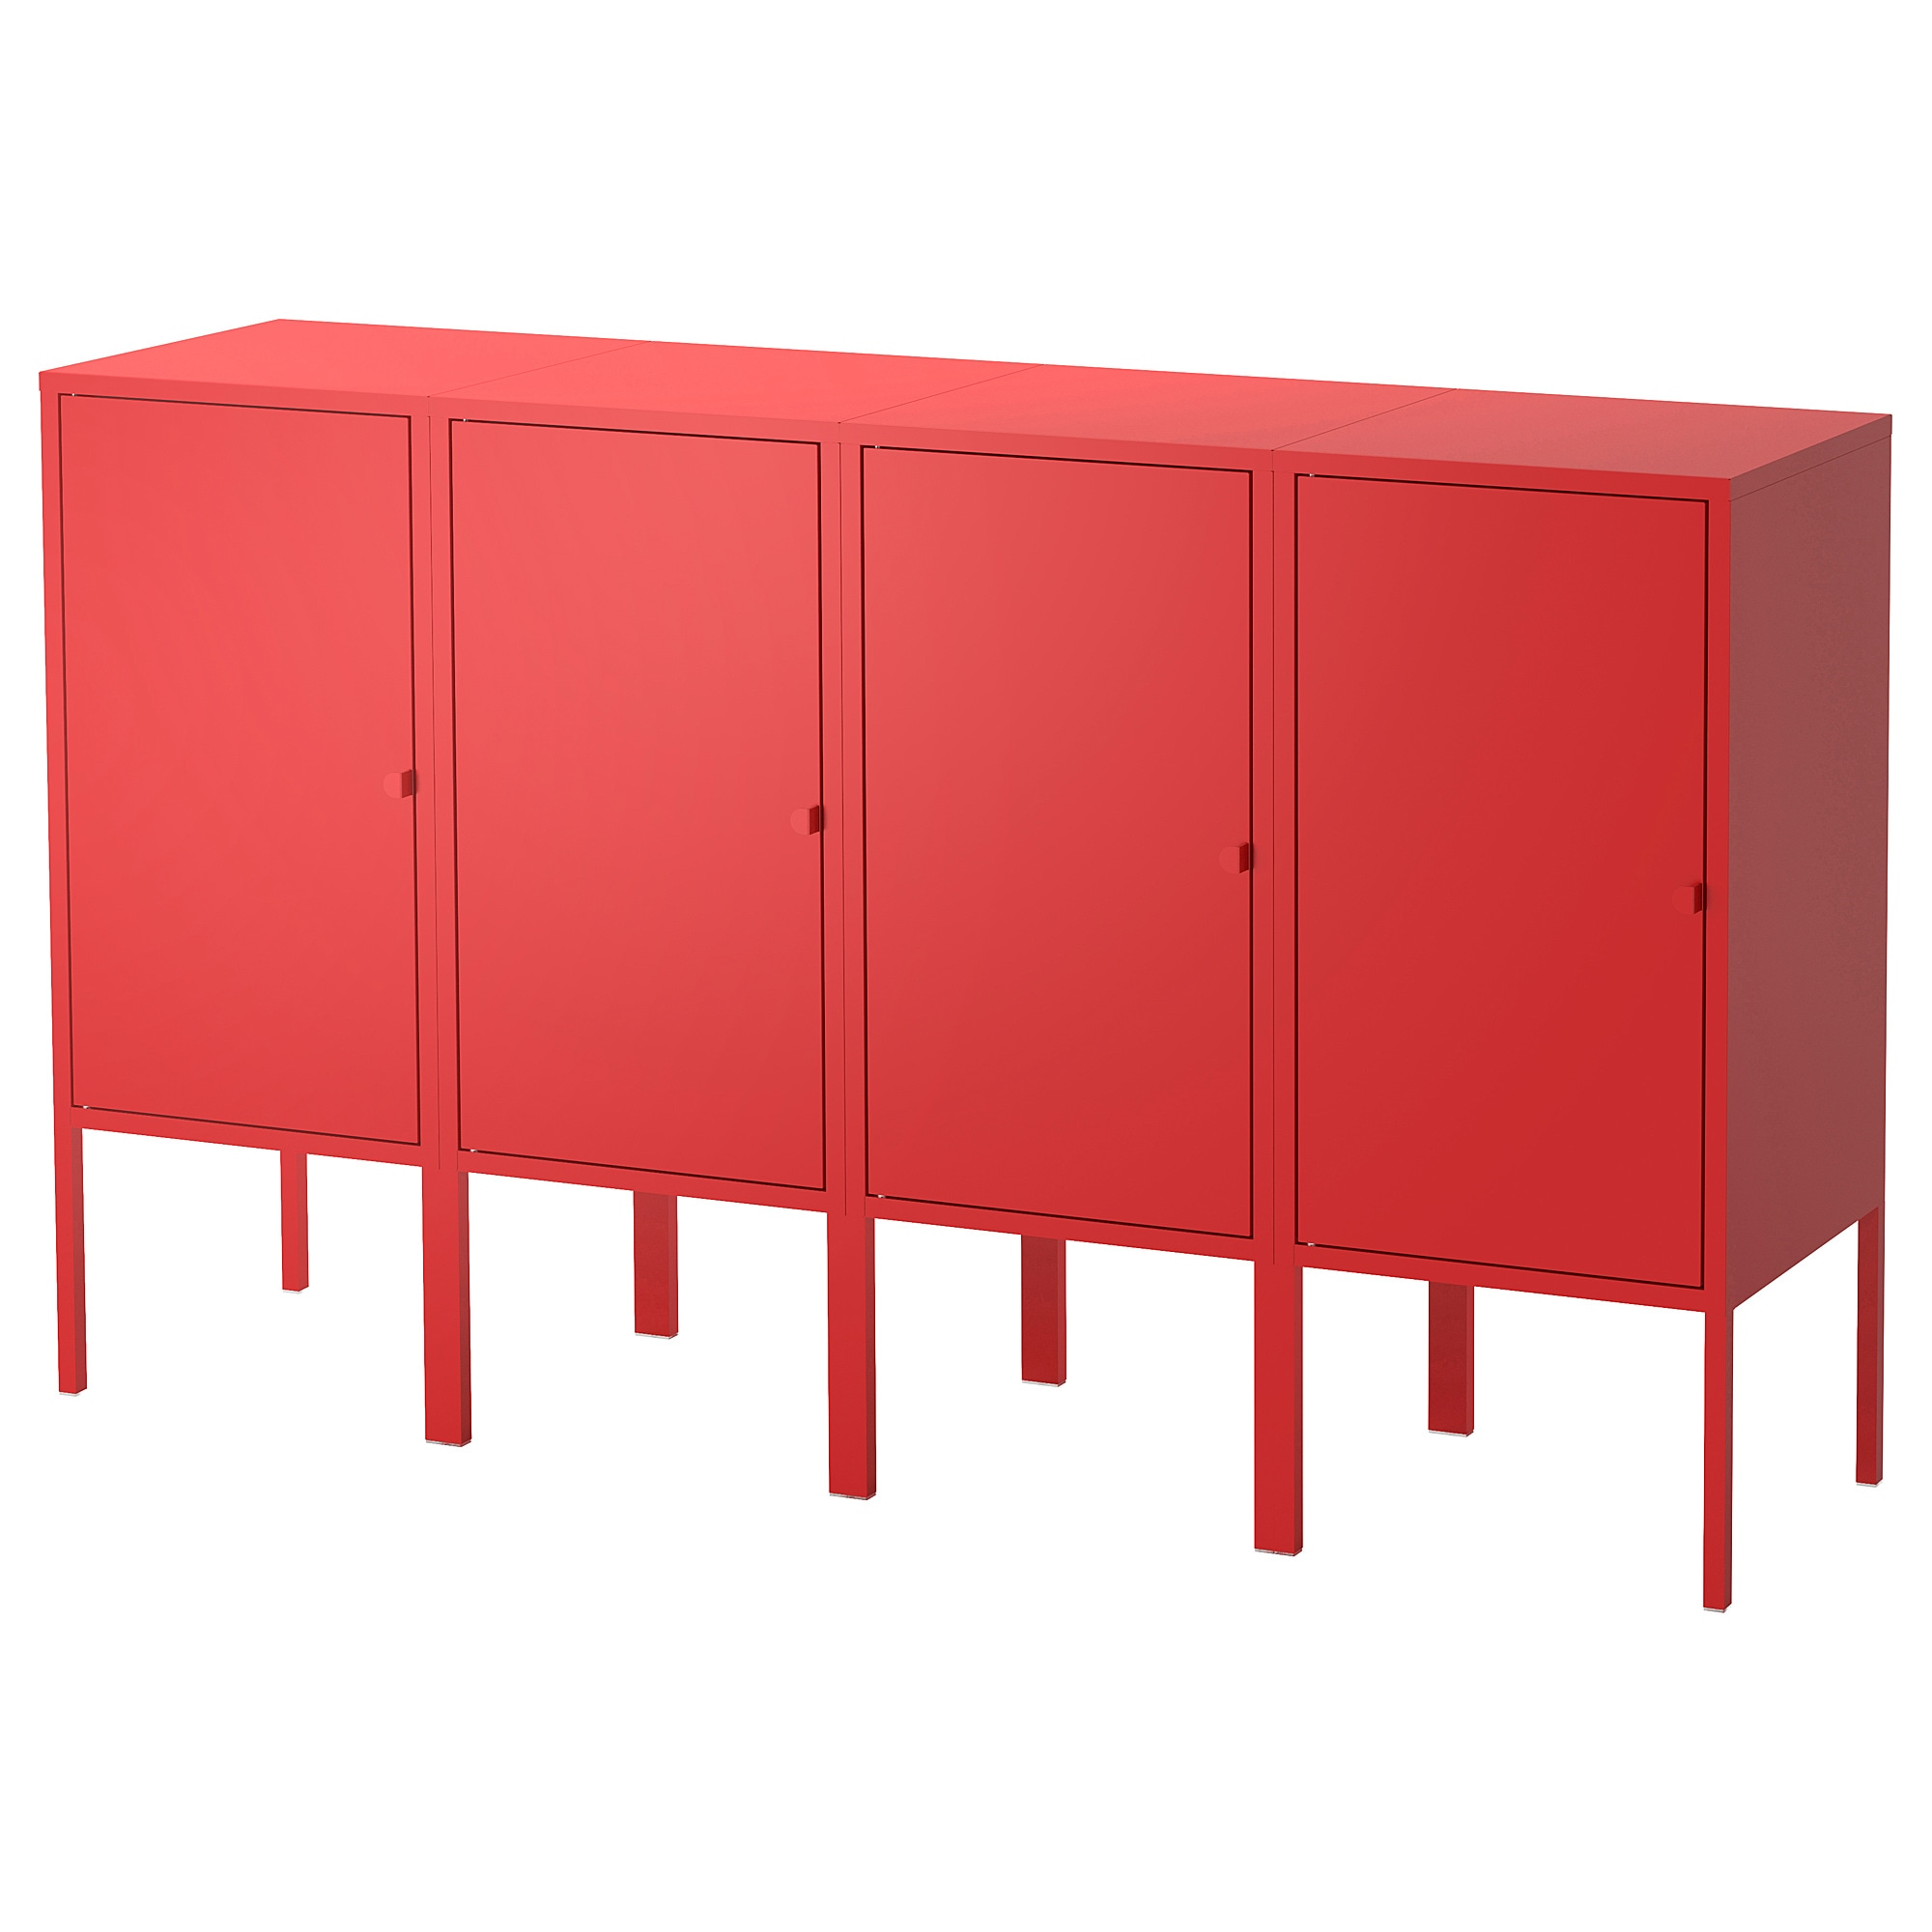 LIXHULT storage combination, red Width: 55 1/8